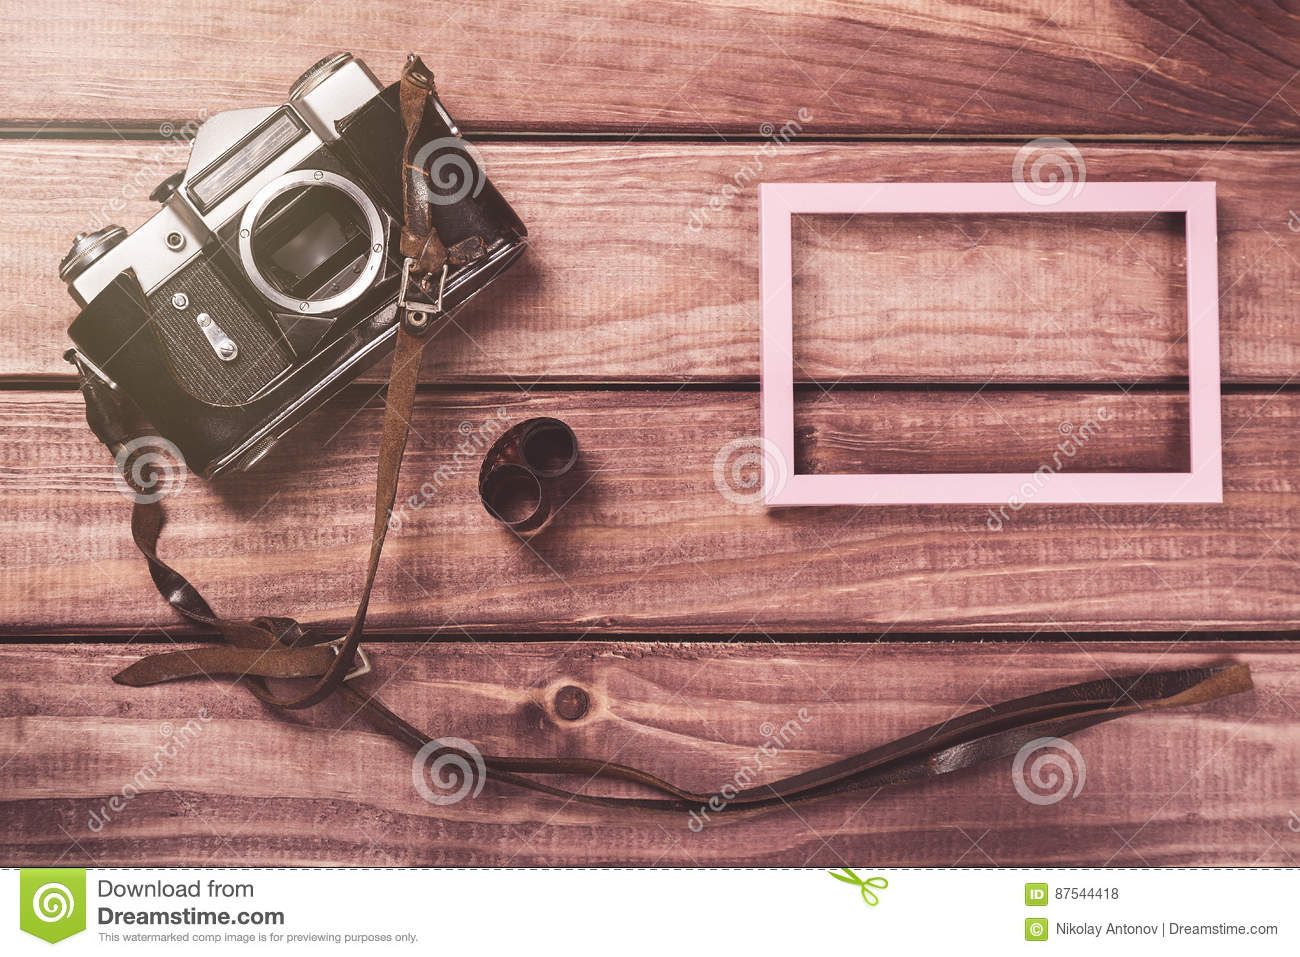 Old film camera with strap, photo frame and film on wooden background. Vintage toned and top view